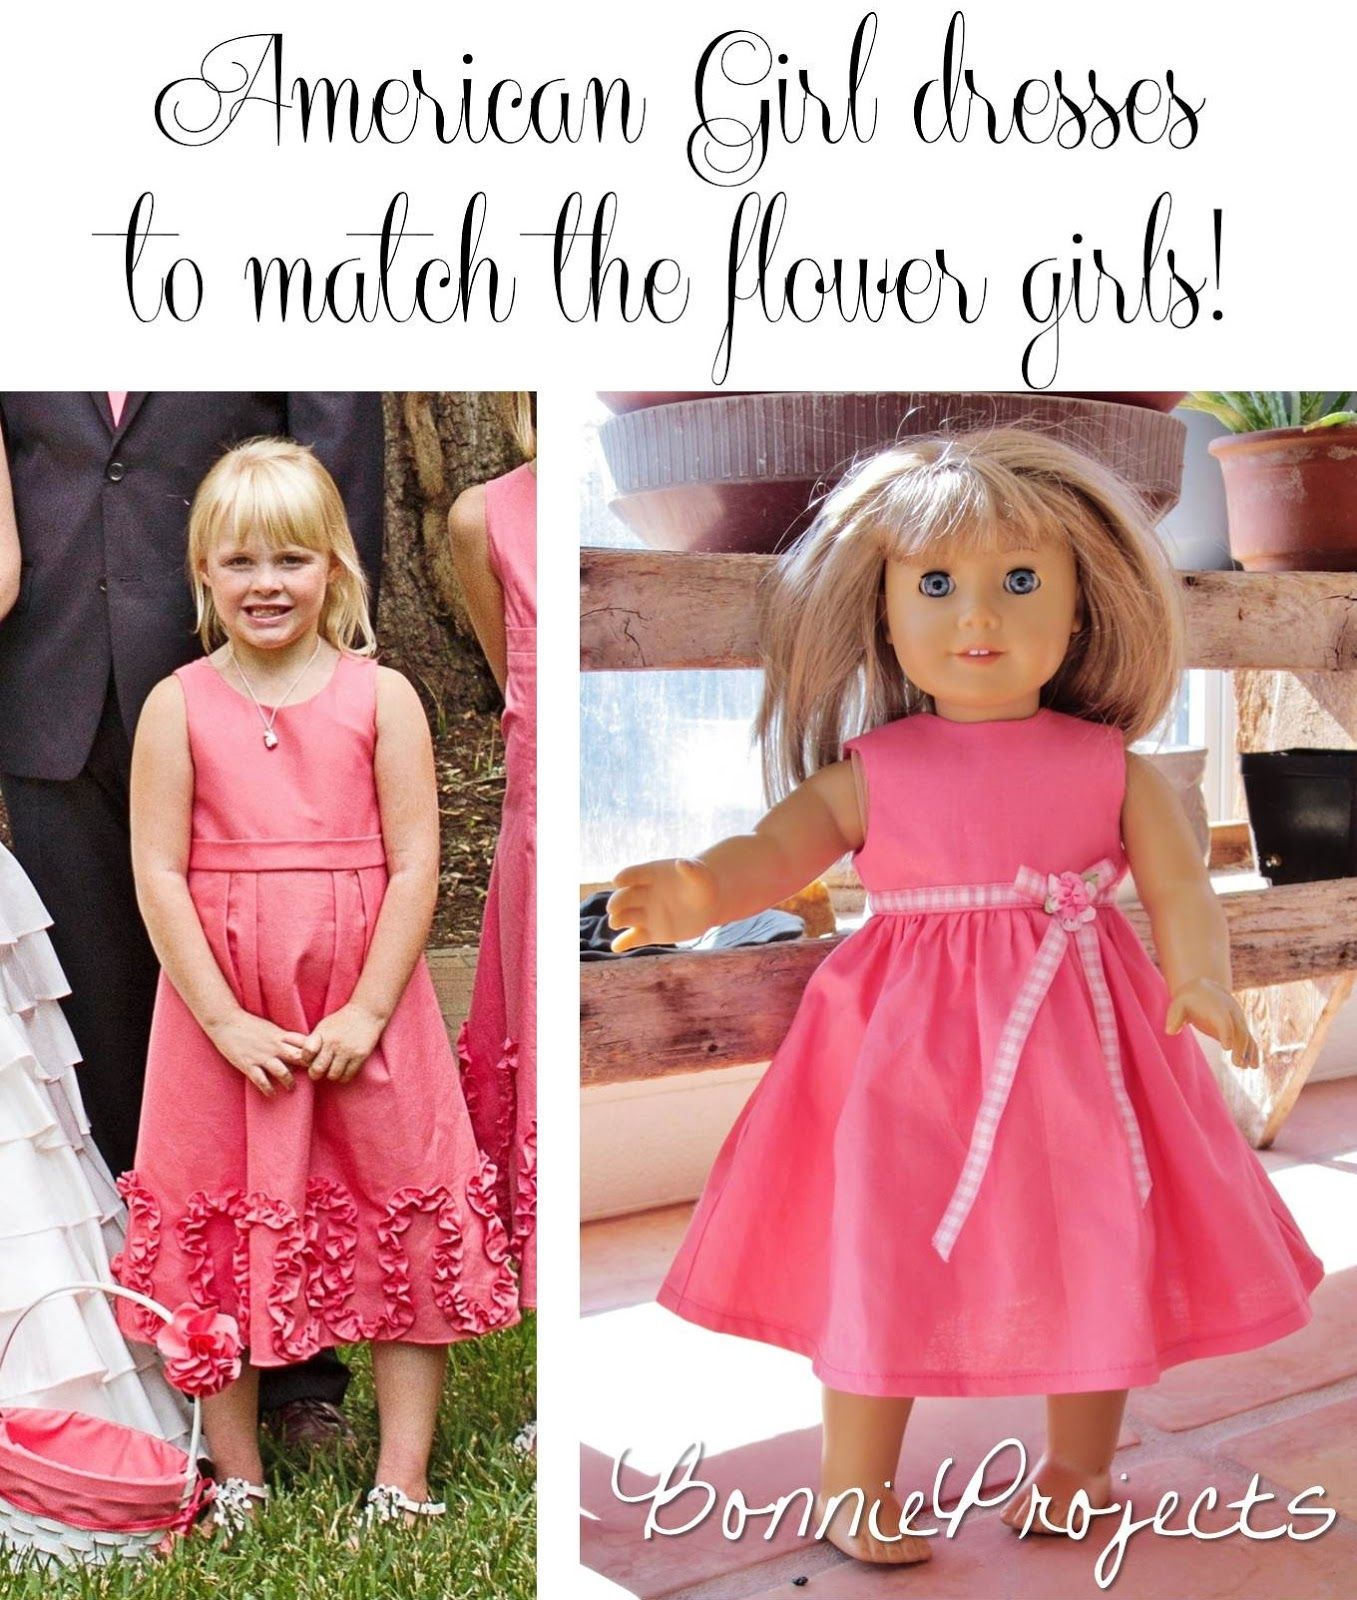 Bonnie Projects: Matching dresses for the flower girls dolls! #AmericanGirl